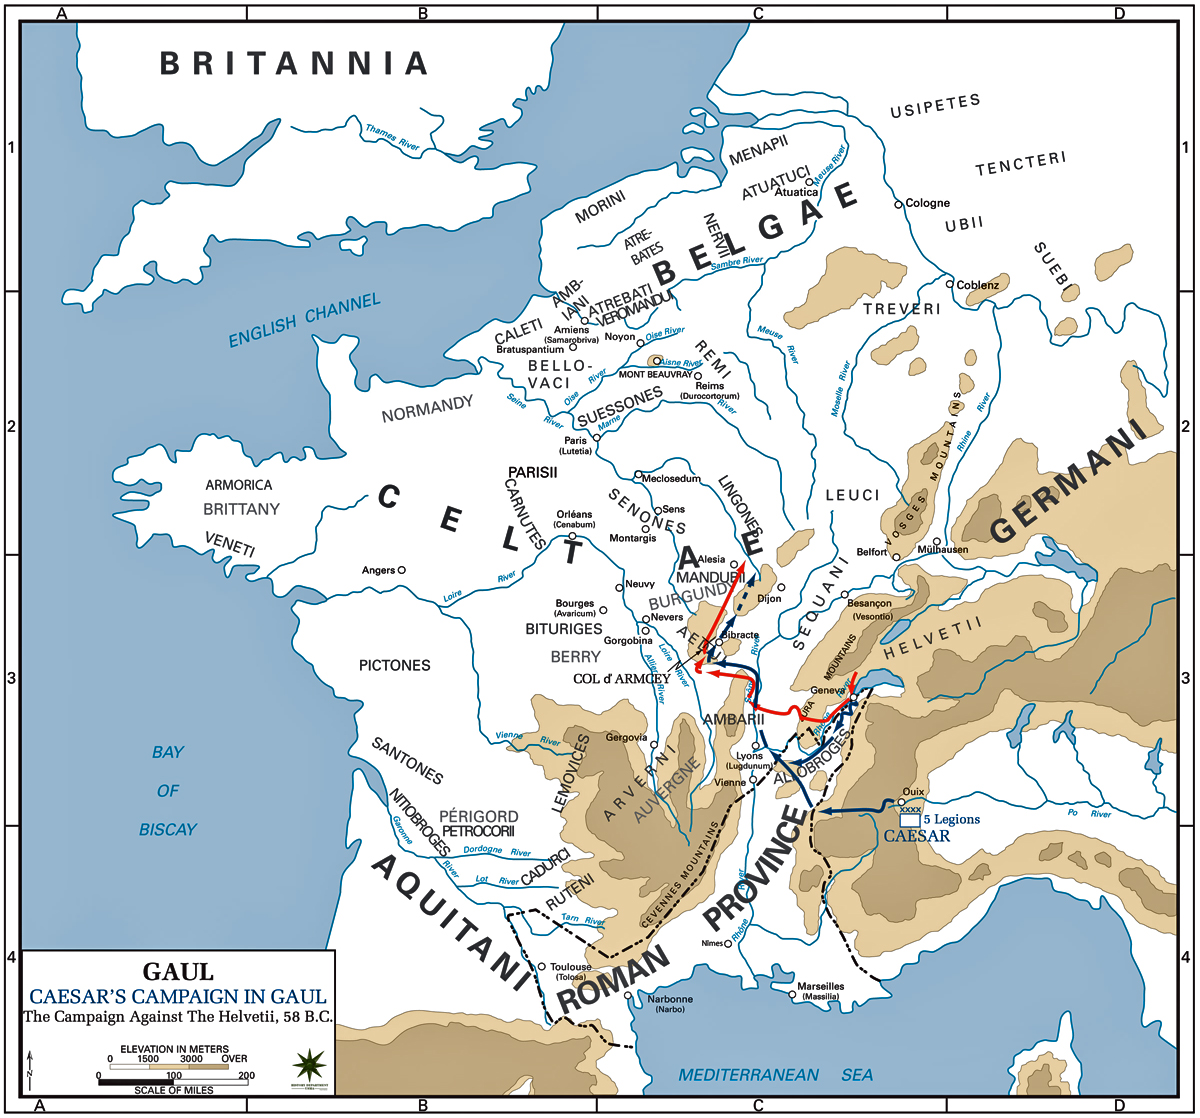 Map of Caesars Campaign Against the Helvetii 58 BC